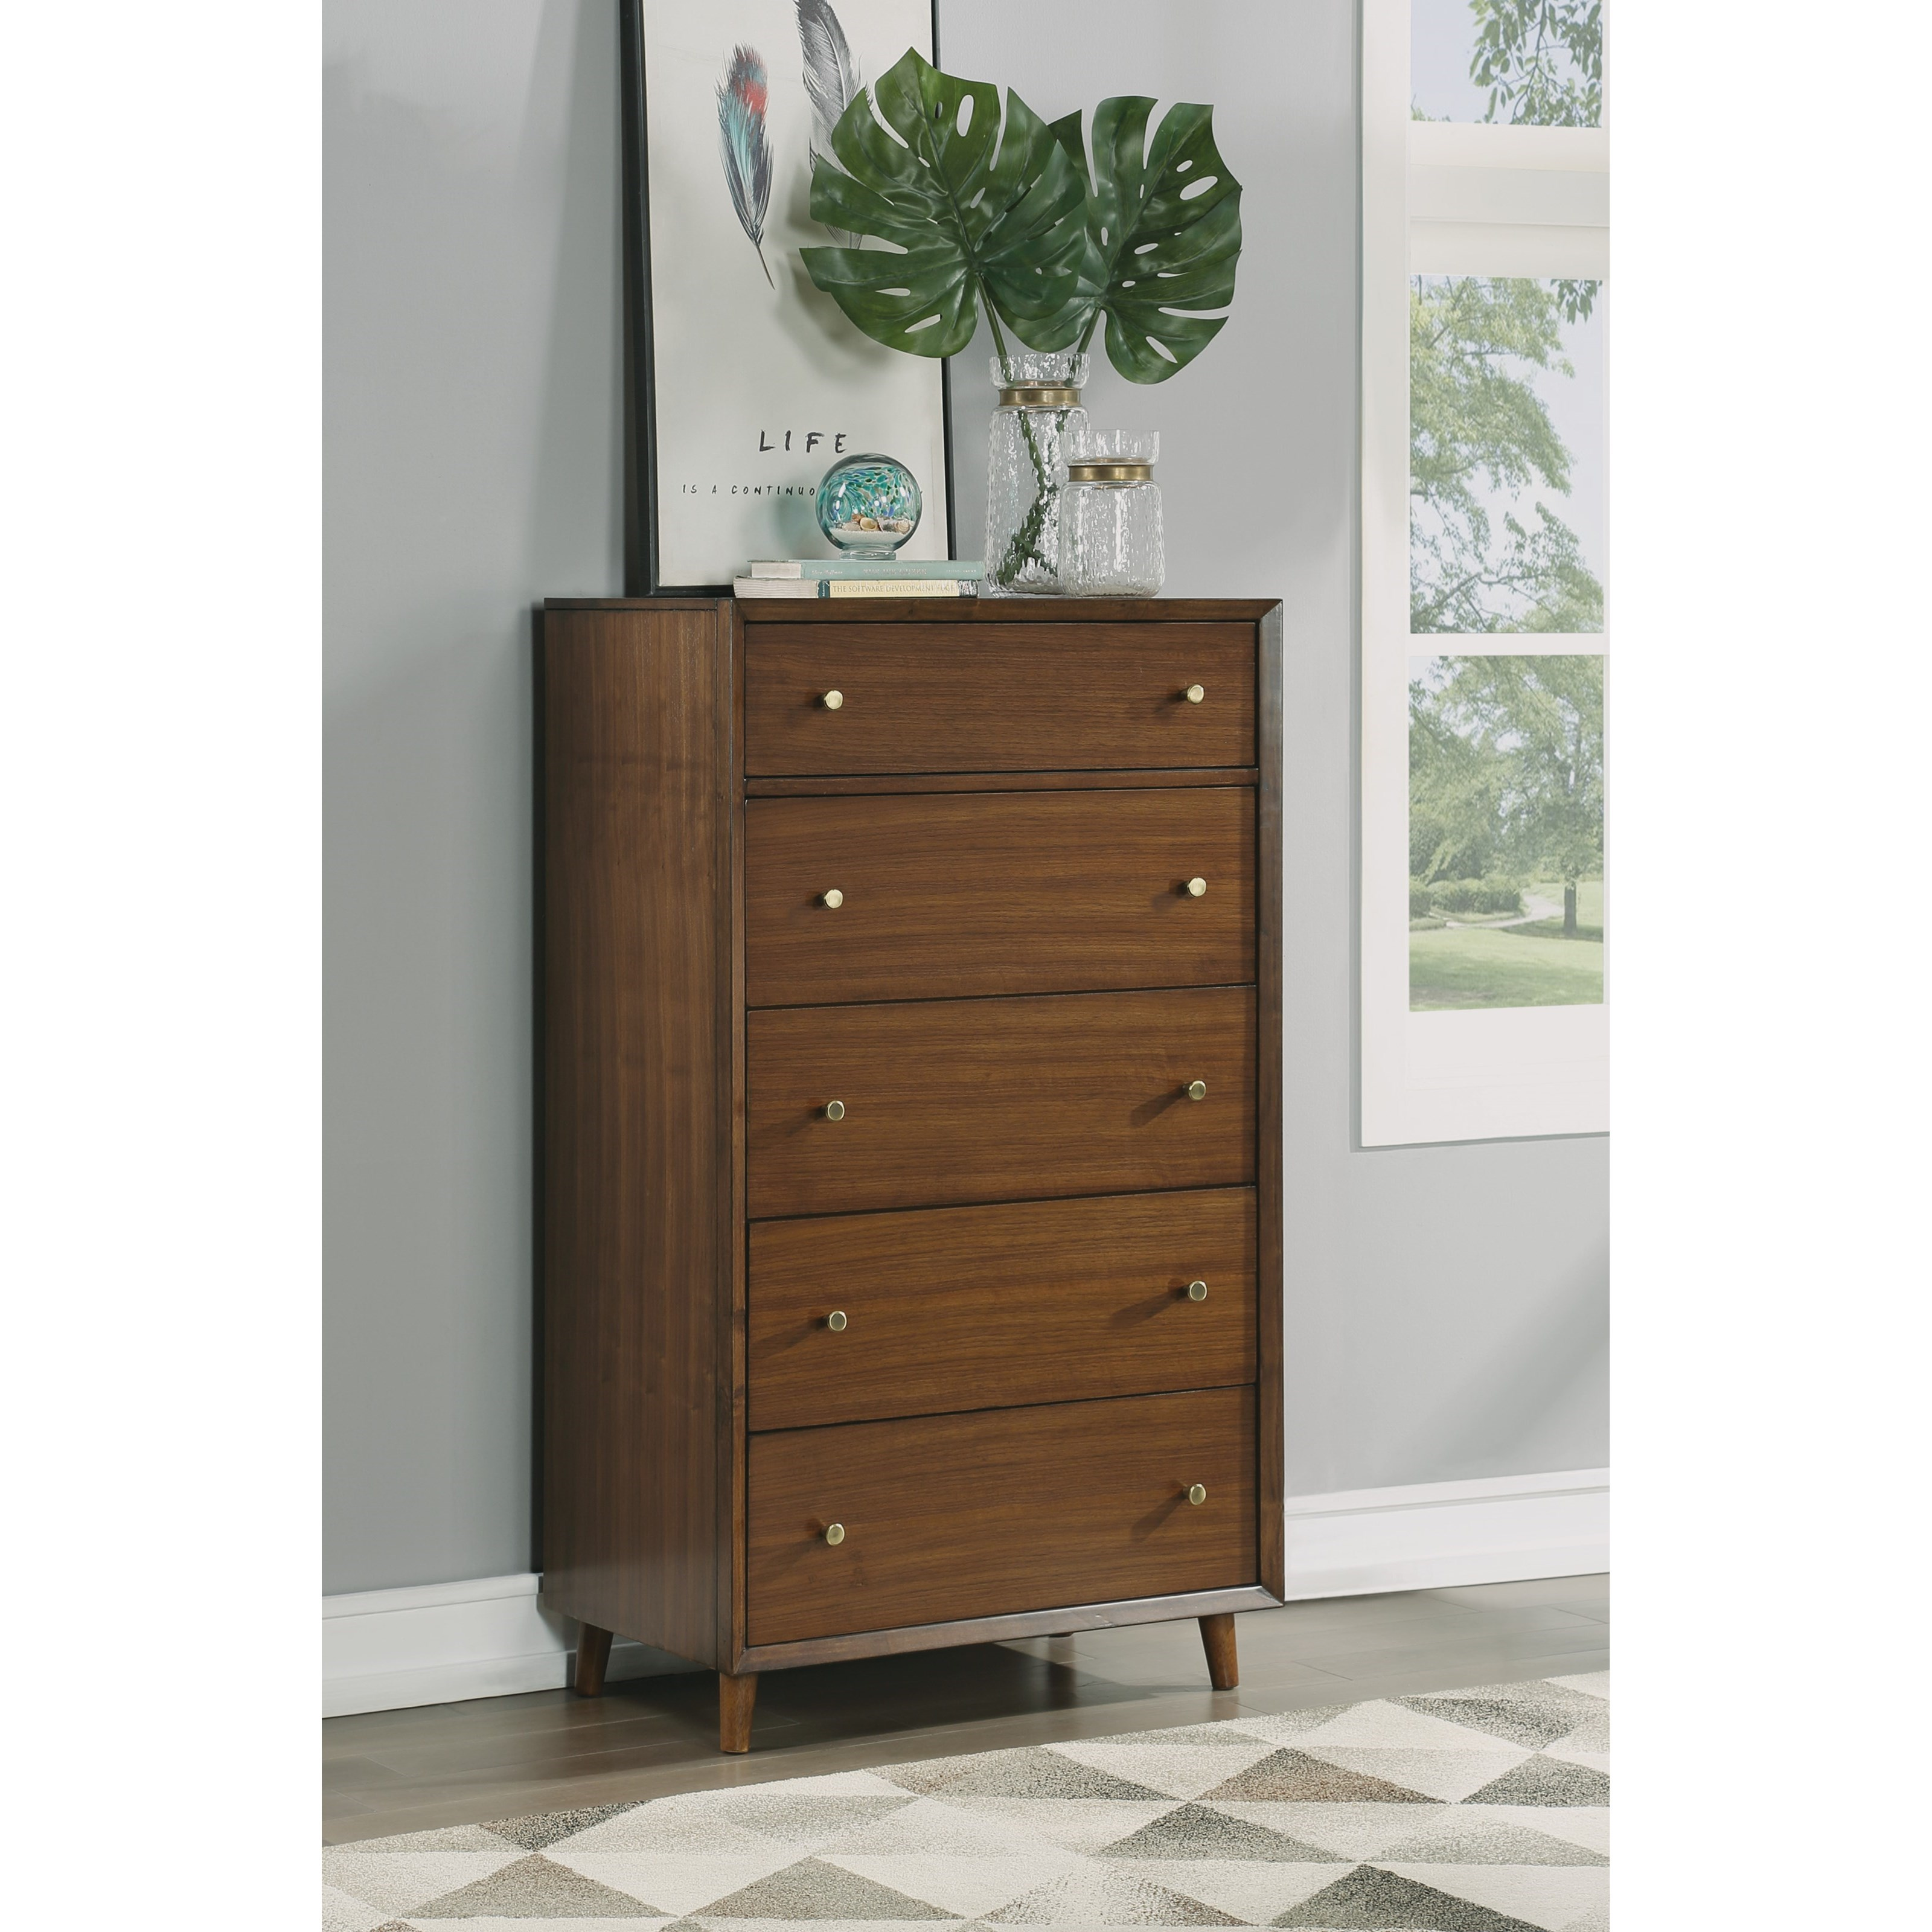 Carmen Carmen Chest of Drawers by Flexsteel Wynwood Collection at Morris Home